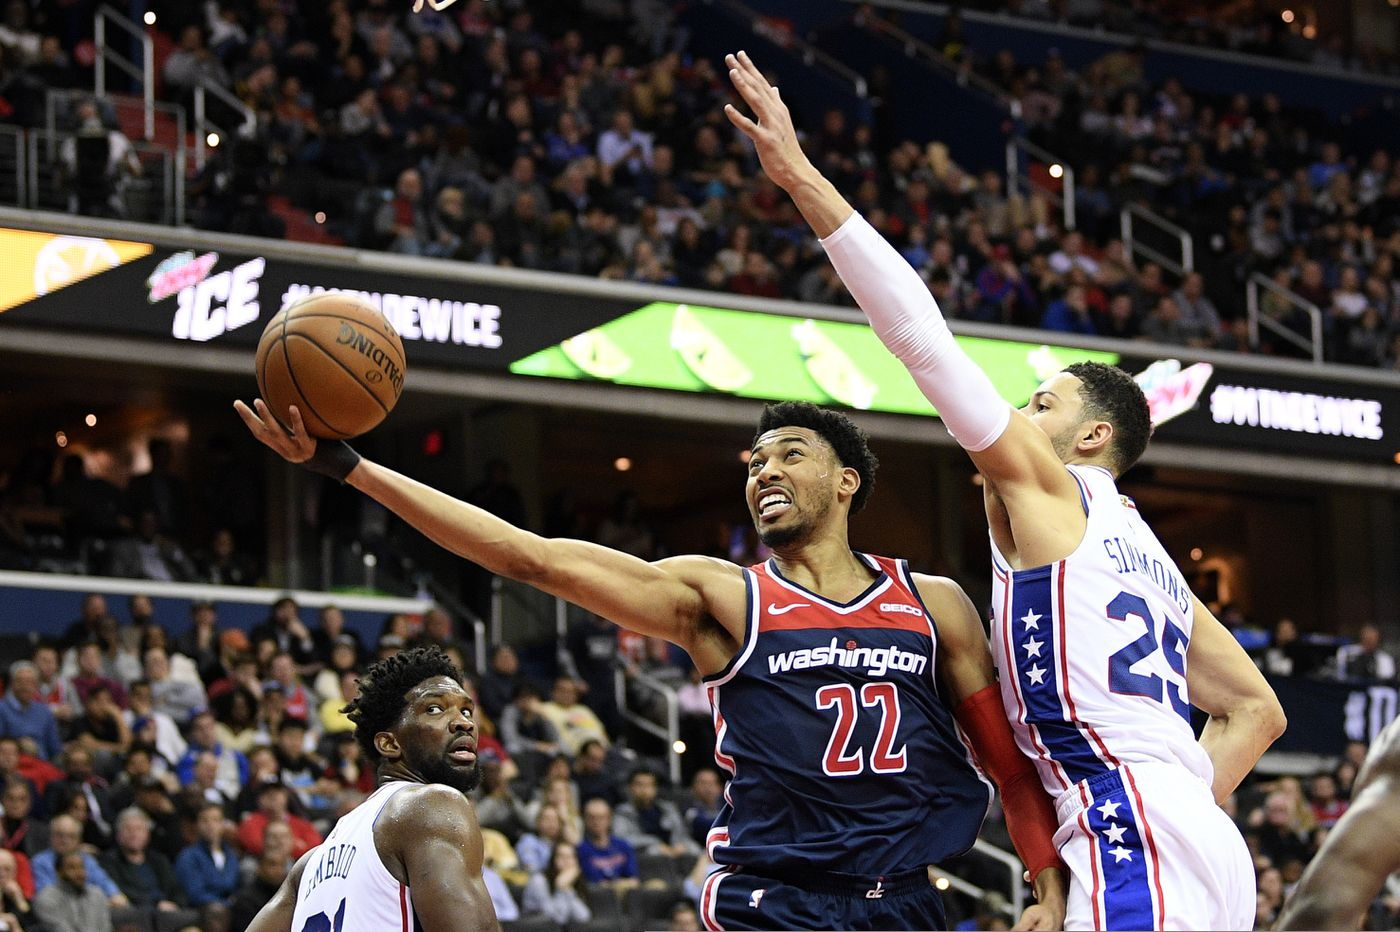 Sixers-Wizards observations: Horrid perimeter defense (again), careless ball handling (again)